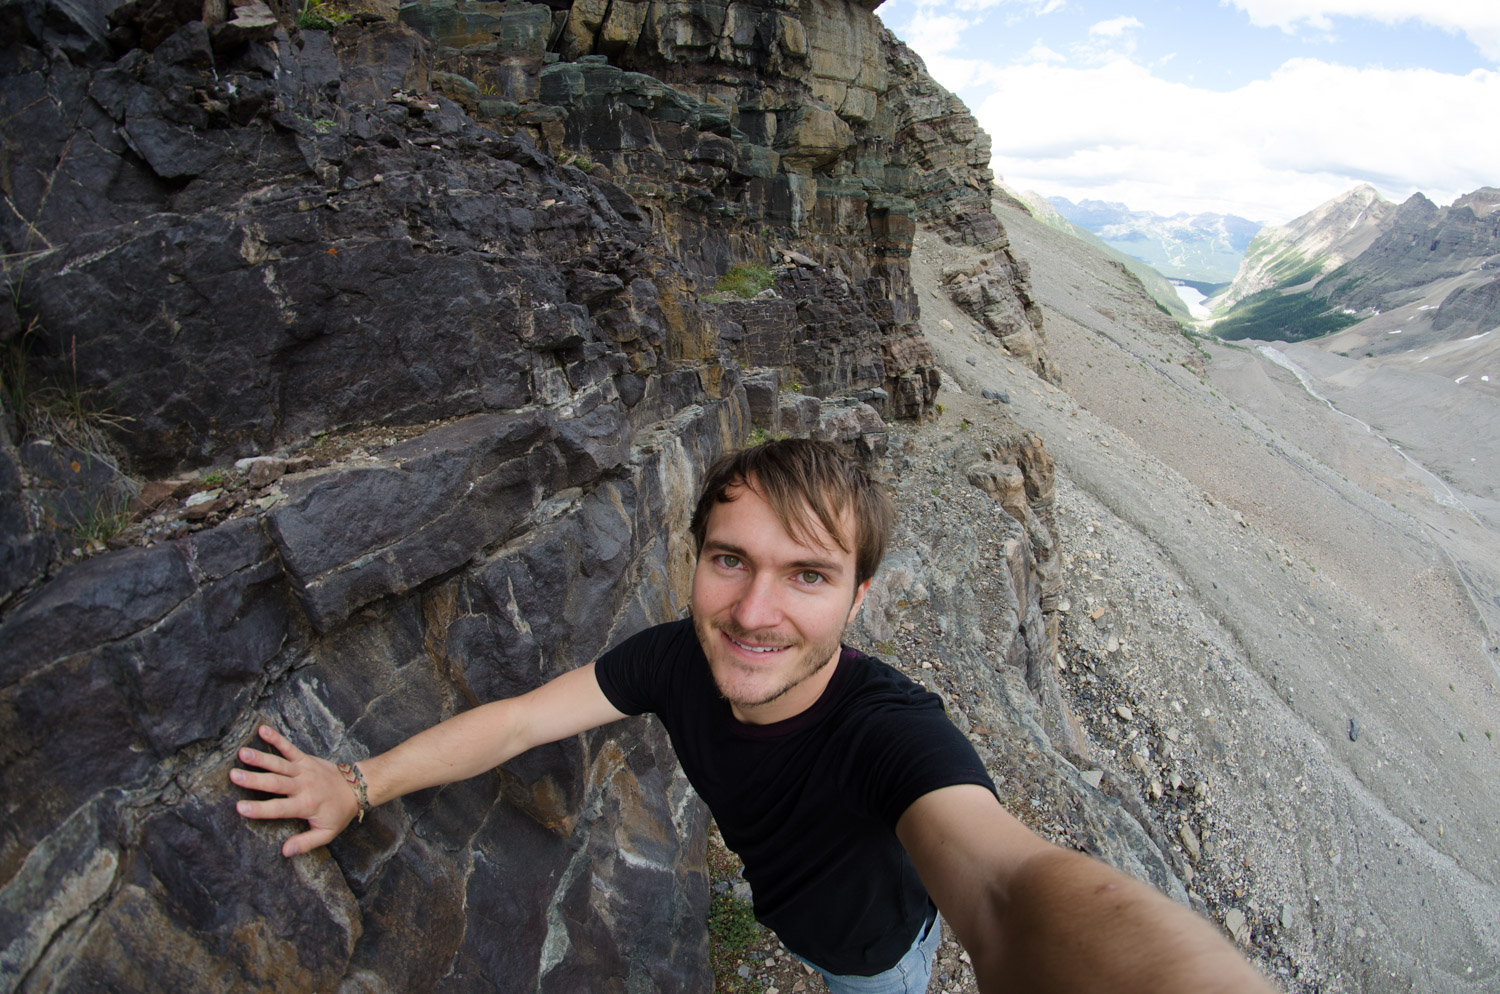 At the very back of P6, I scrambled up a hill and traversed a narrow ledge. All for a terrified selfie.